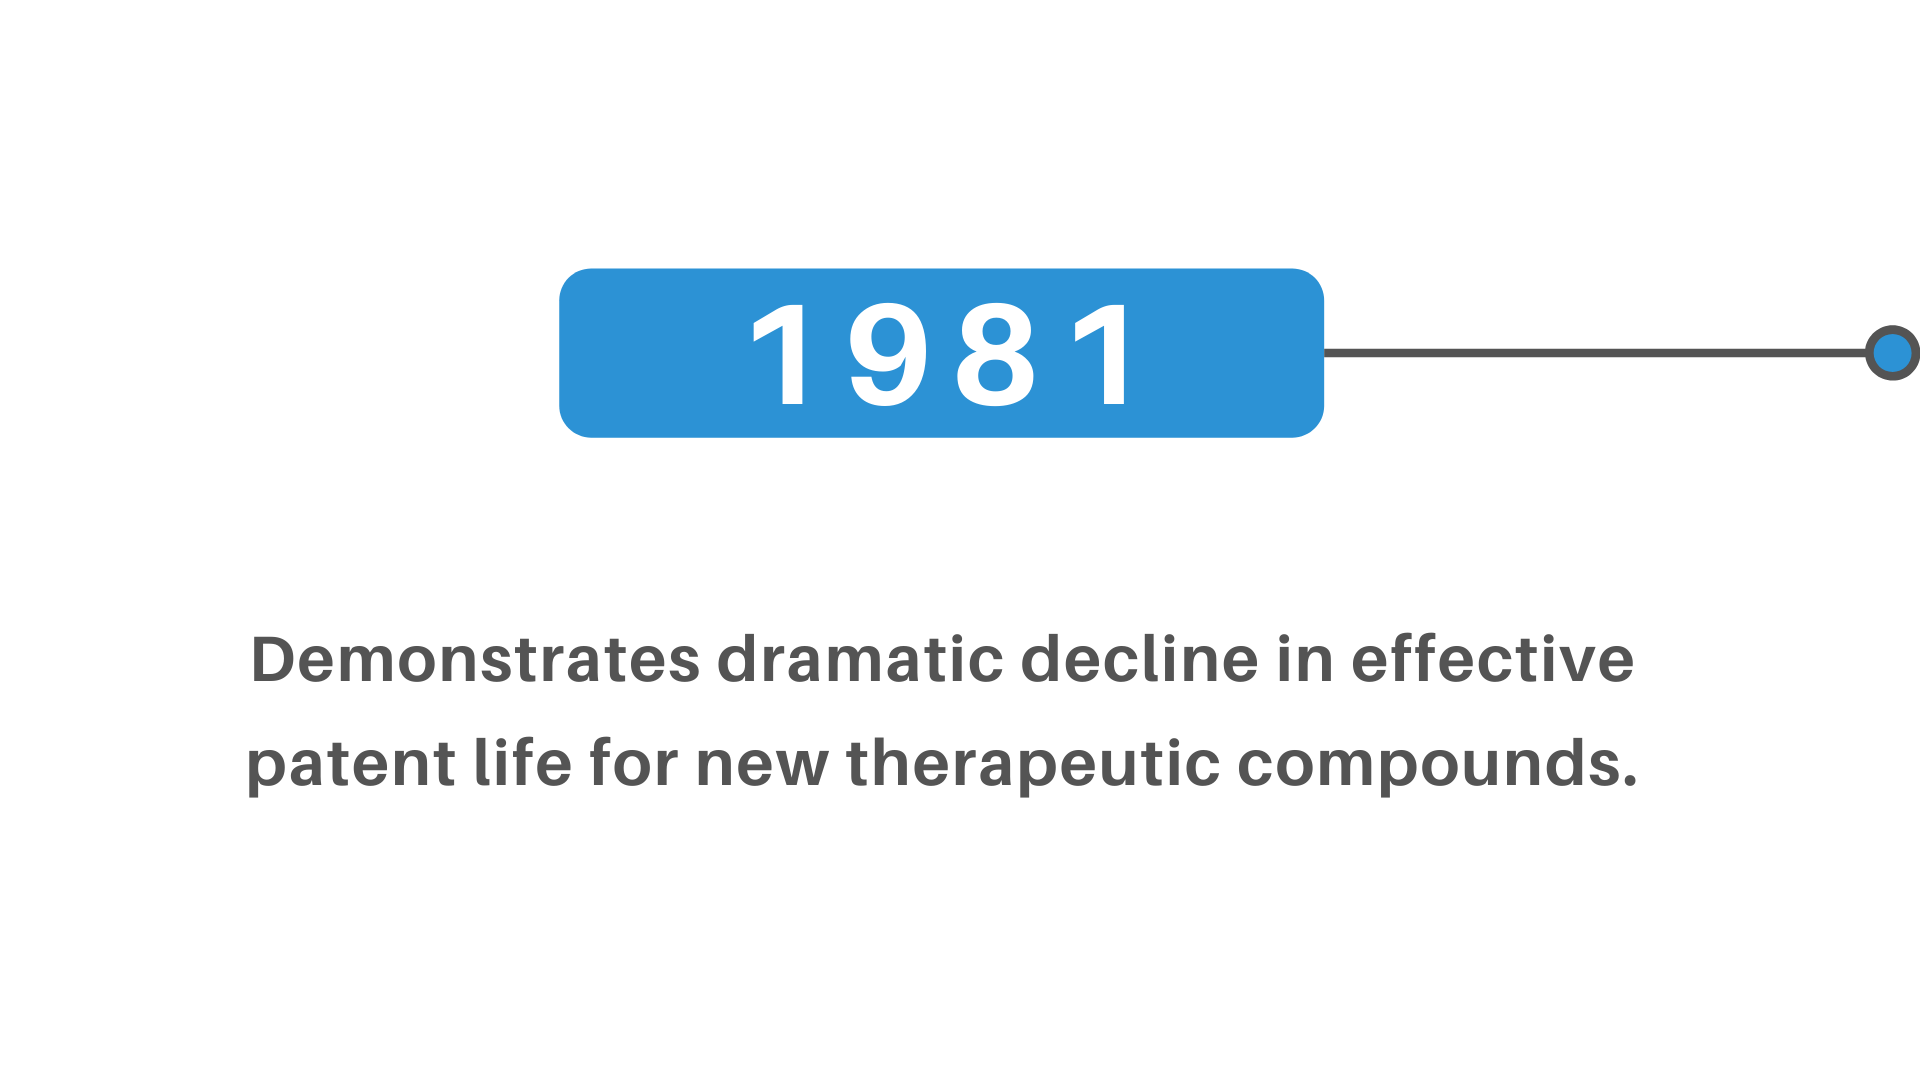 patent life therapeutic compounds